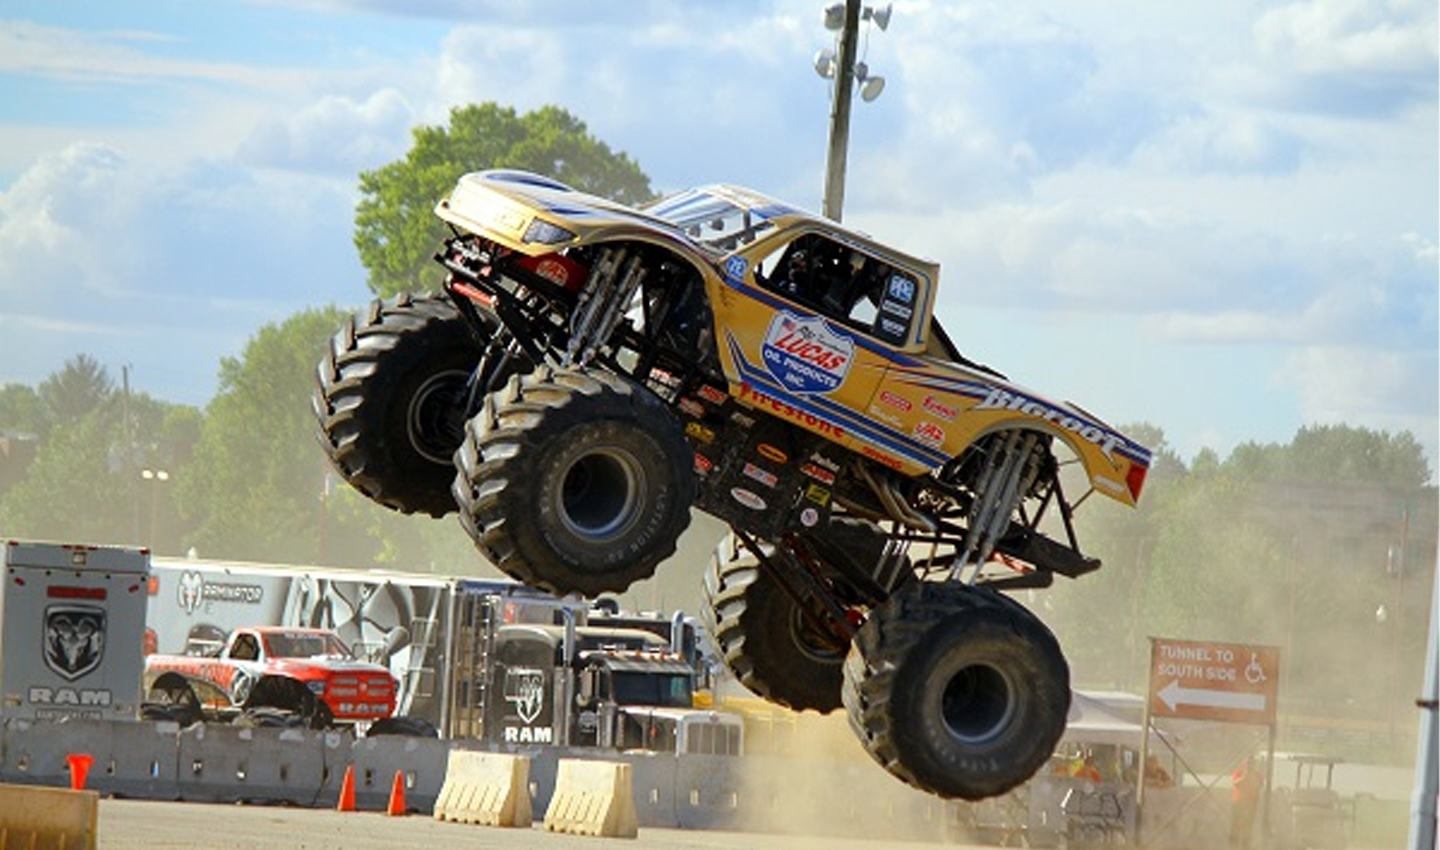 Event: 38th O'Reilly Auto Parts Fall 4-Wheel Jamboree Nationals